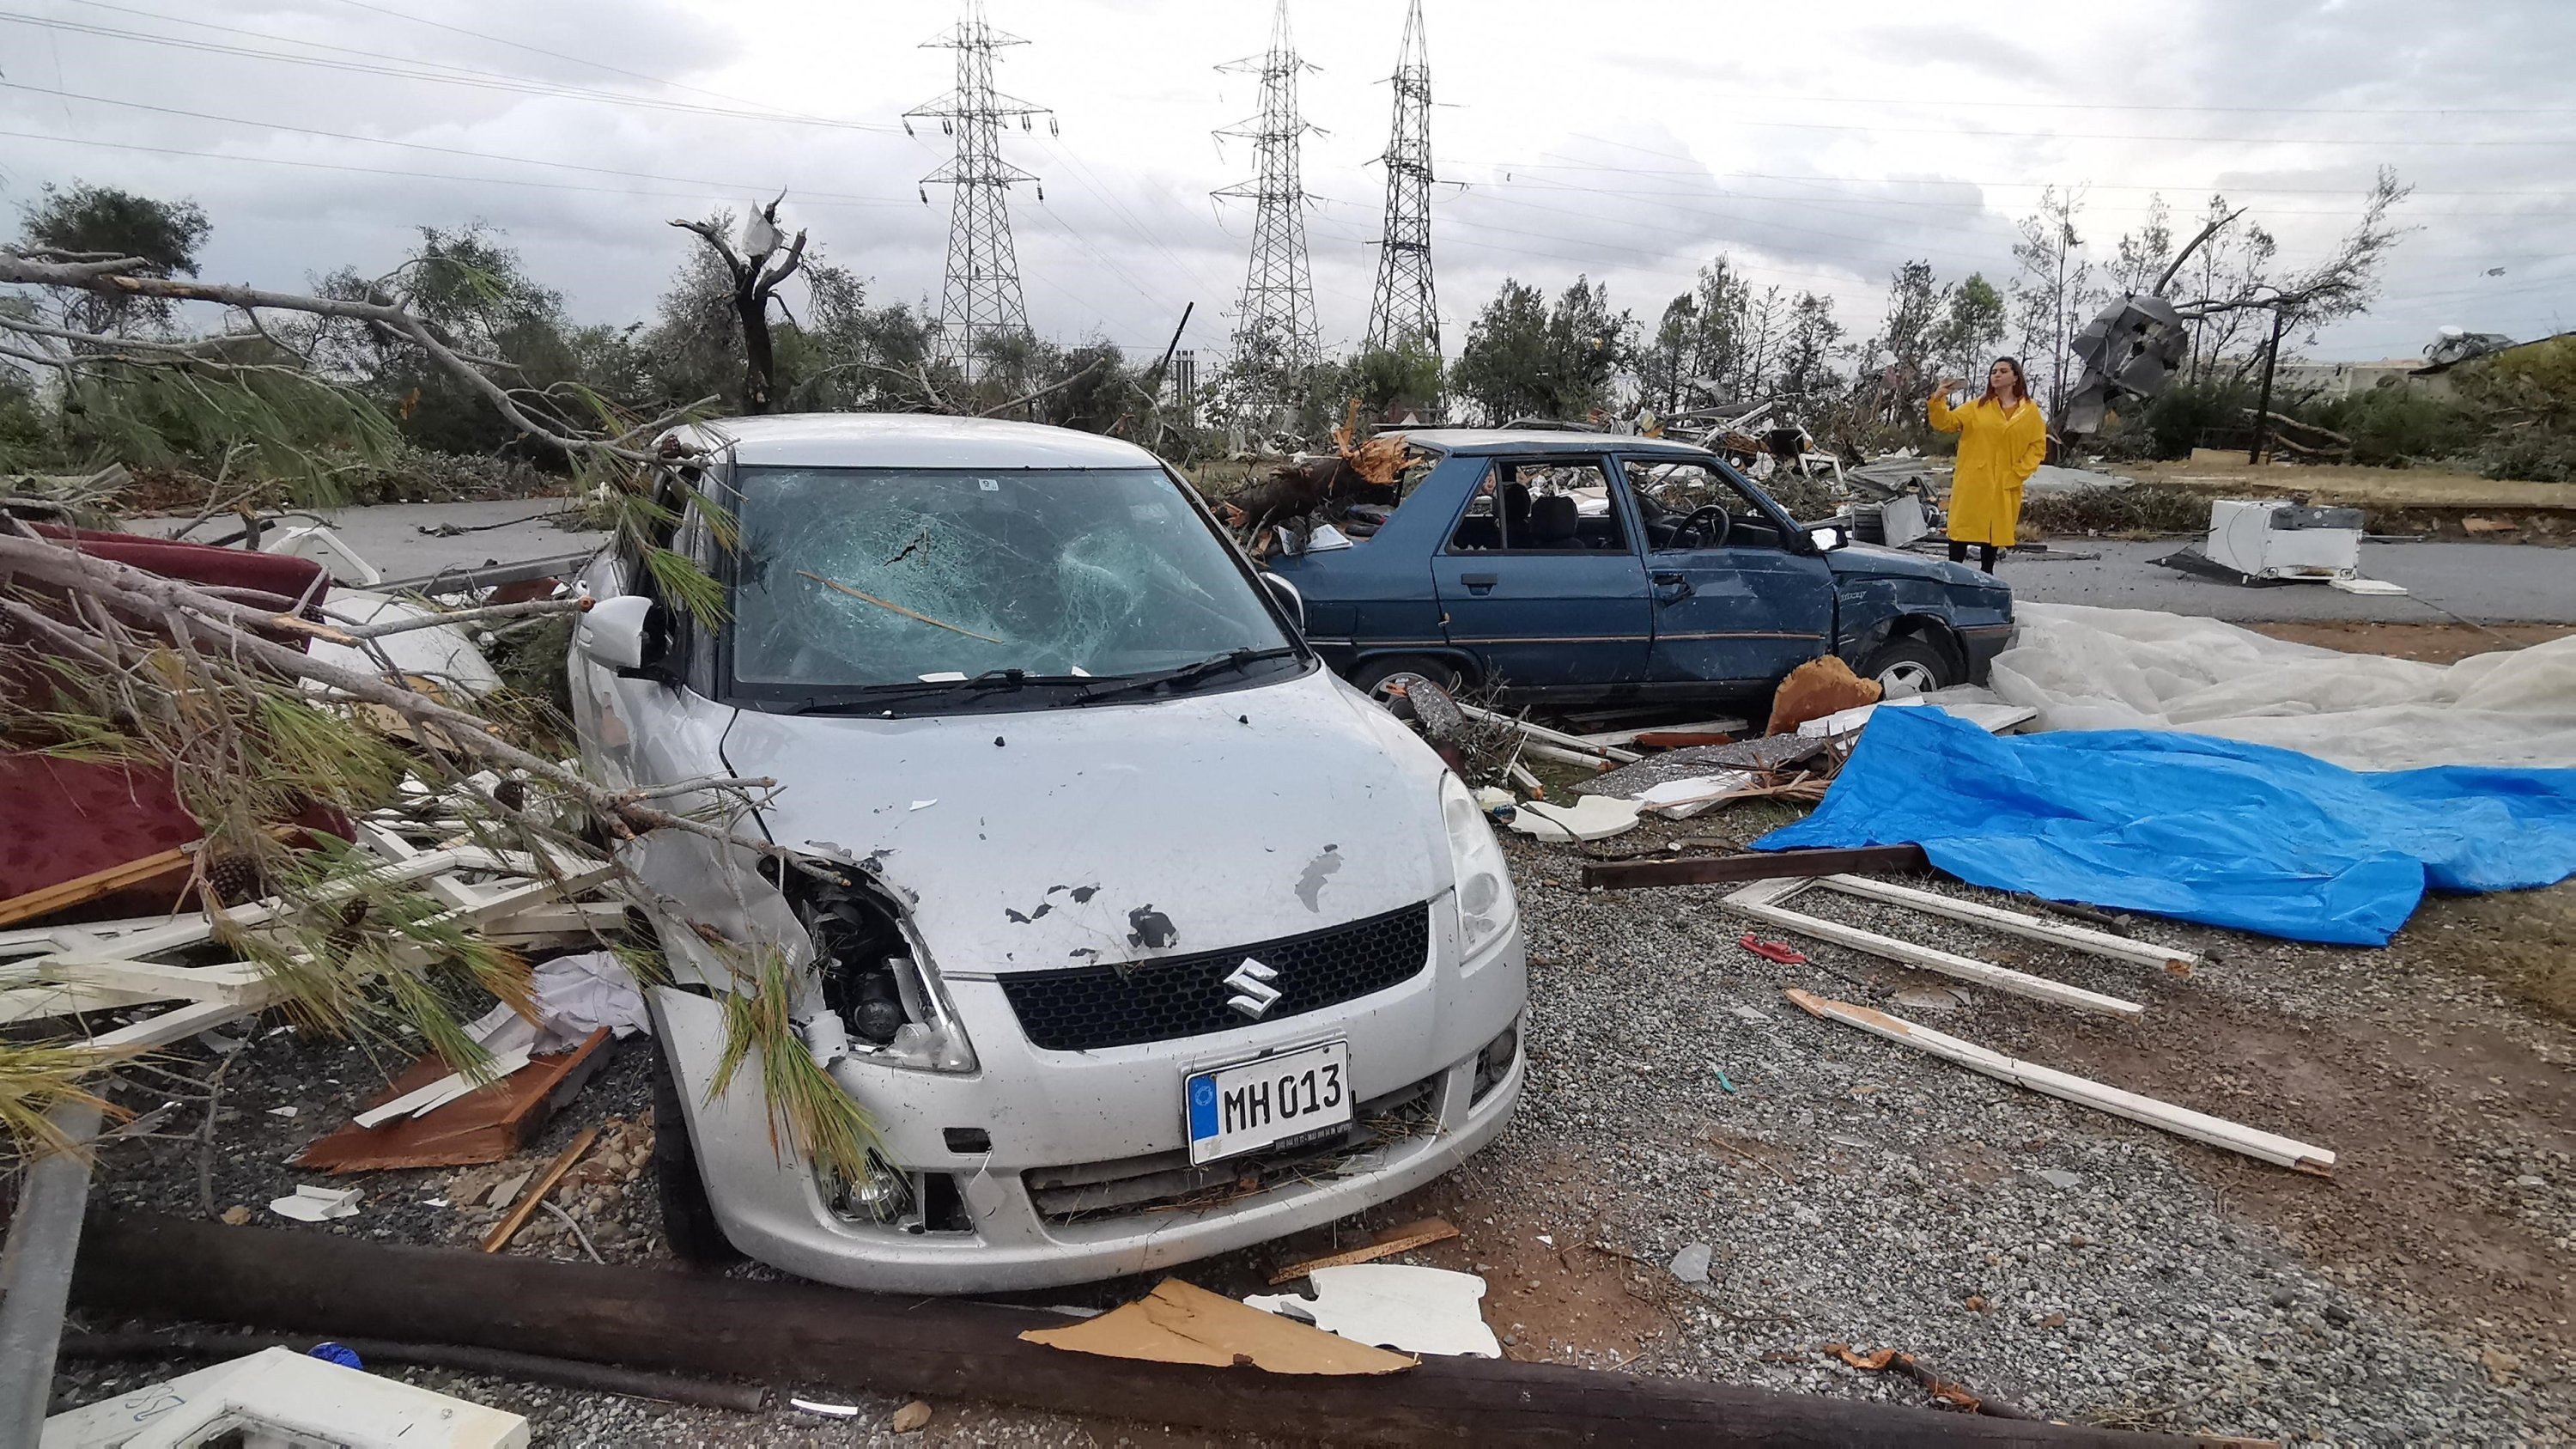 Damaged buildings and vehicles are seen in the aftermath of a tornado, in the Girne district, the Turkish Republic of Northern Cyprus (TRNC), Nov. 21, 2020. (IHA Photo)